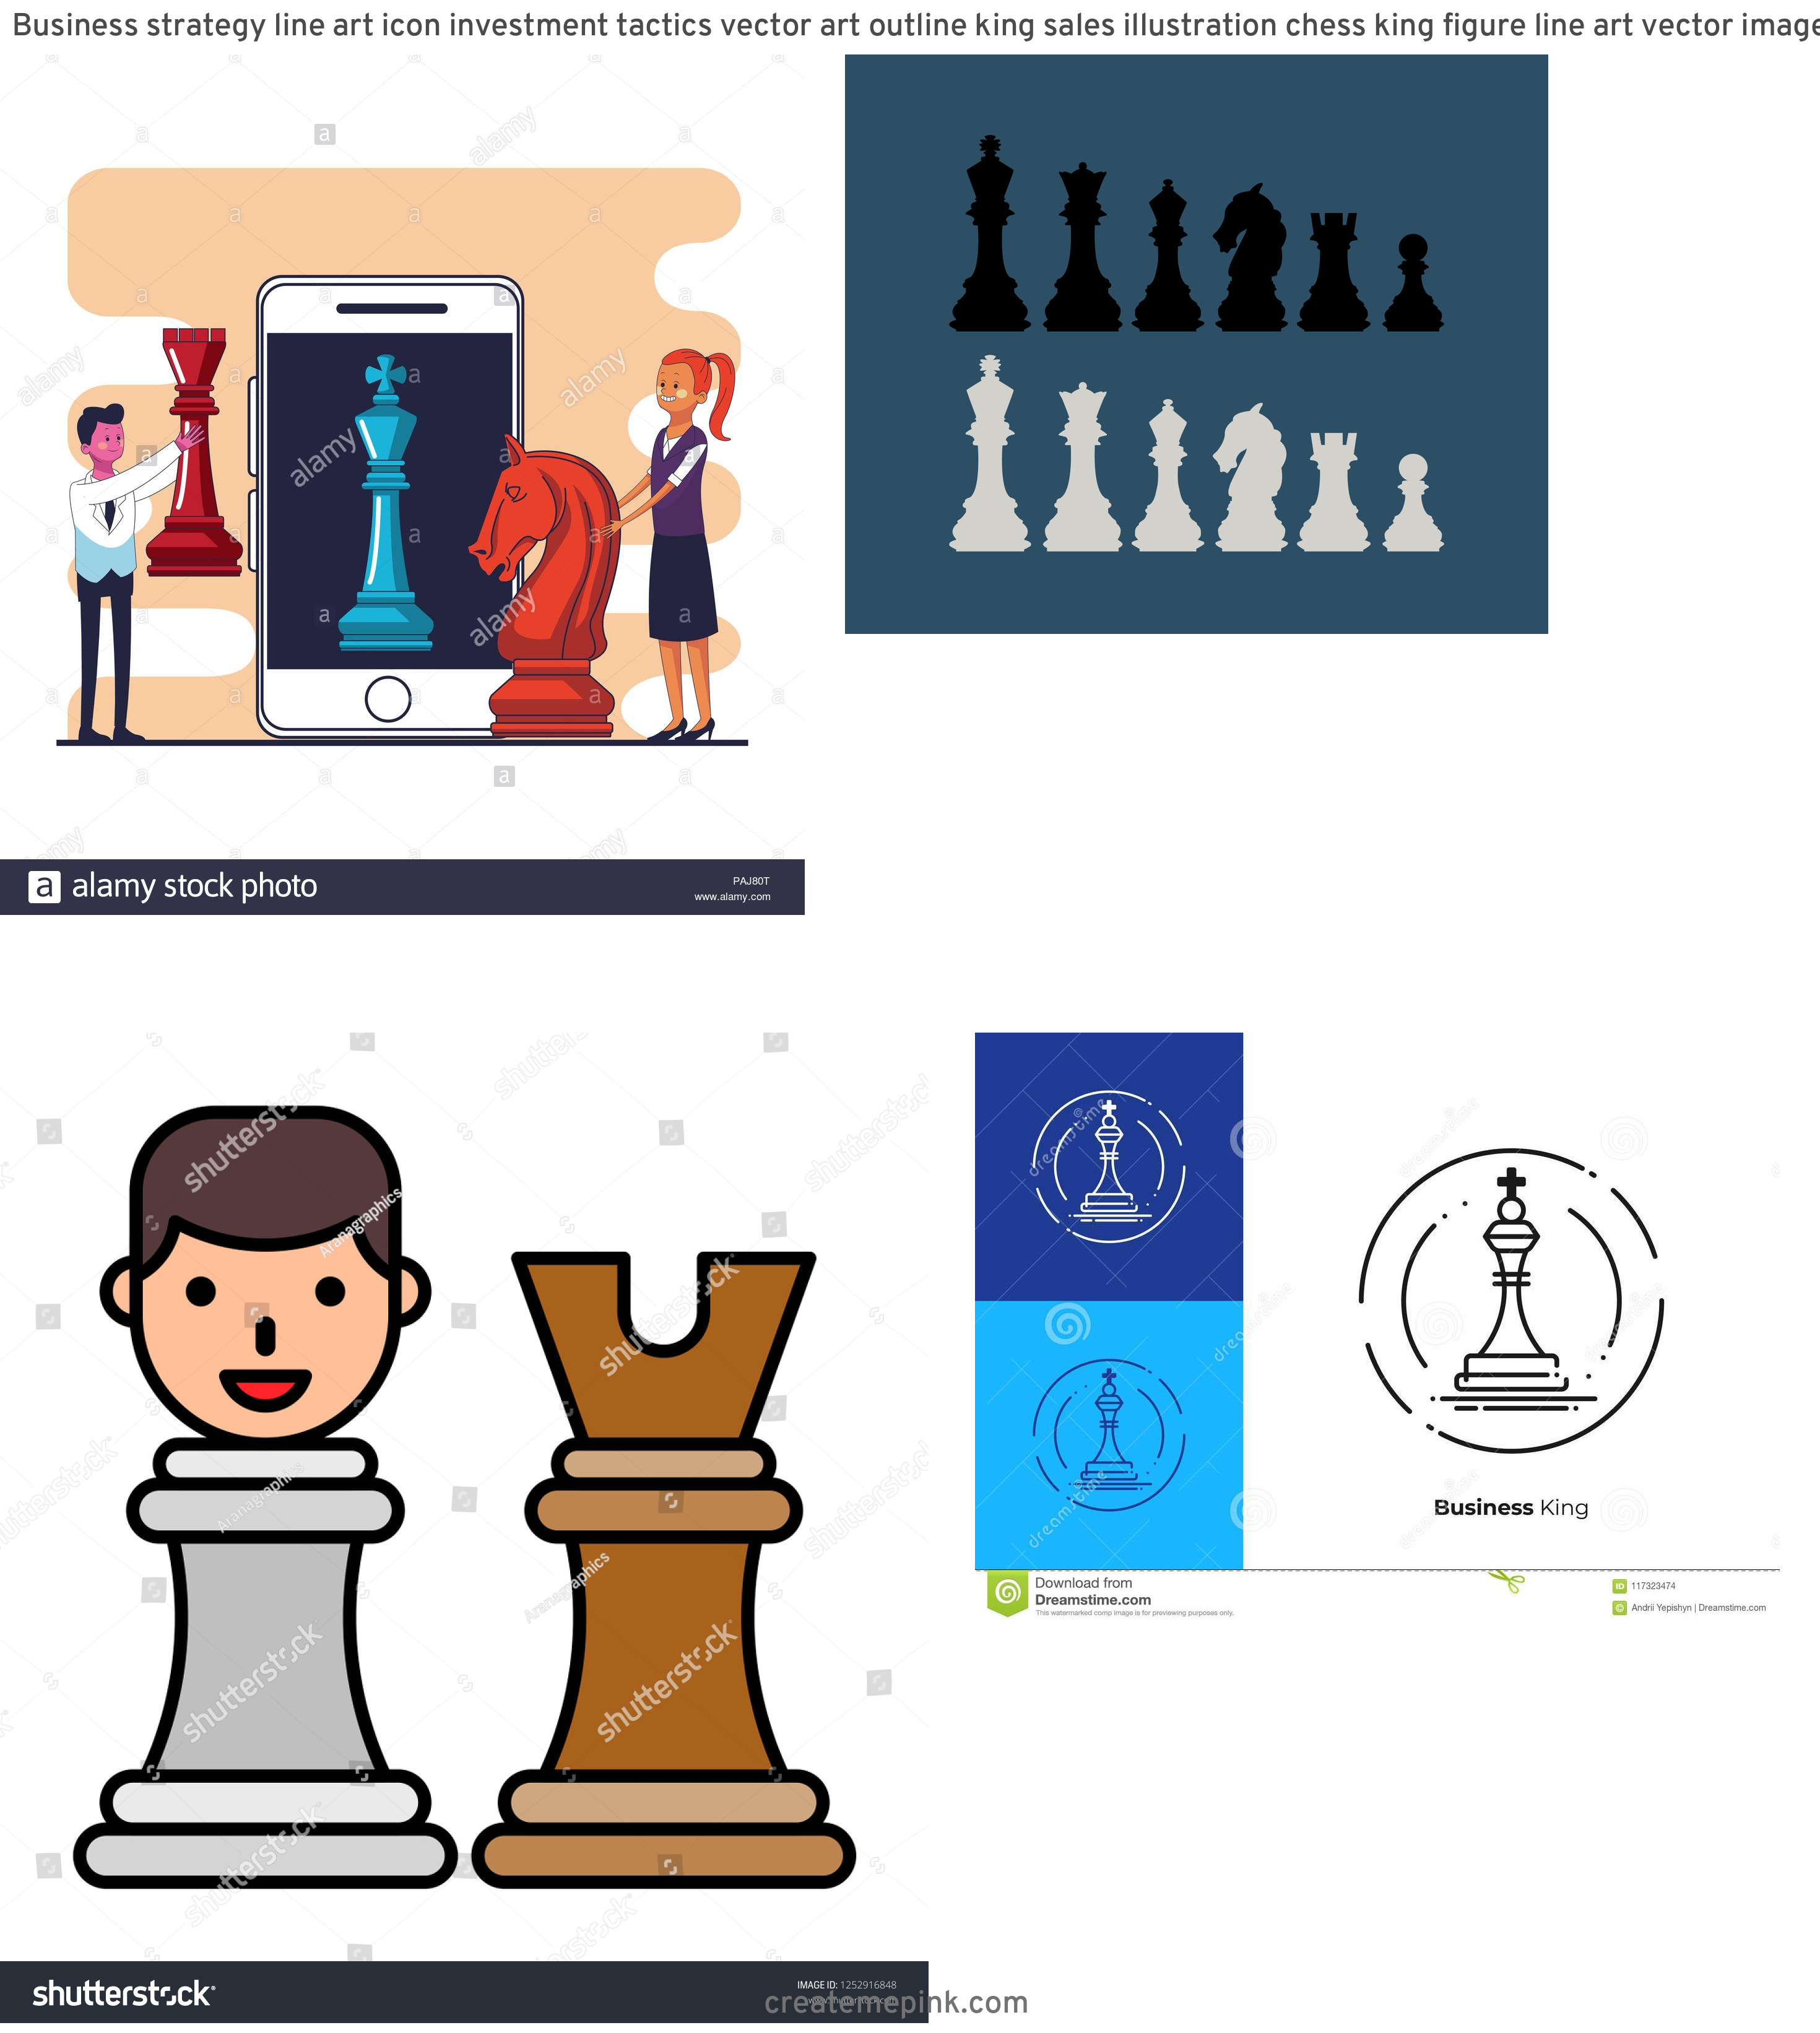 Chess Vector Graphic: Business Strategy Line Art Icon Investment Tactics Vector Art Outline King Sales Illustration Chess King Figure Line Art Vector Image